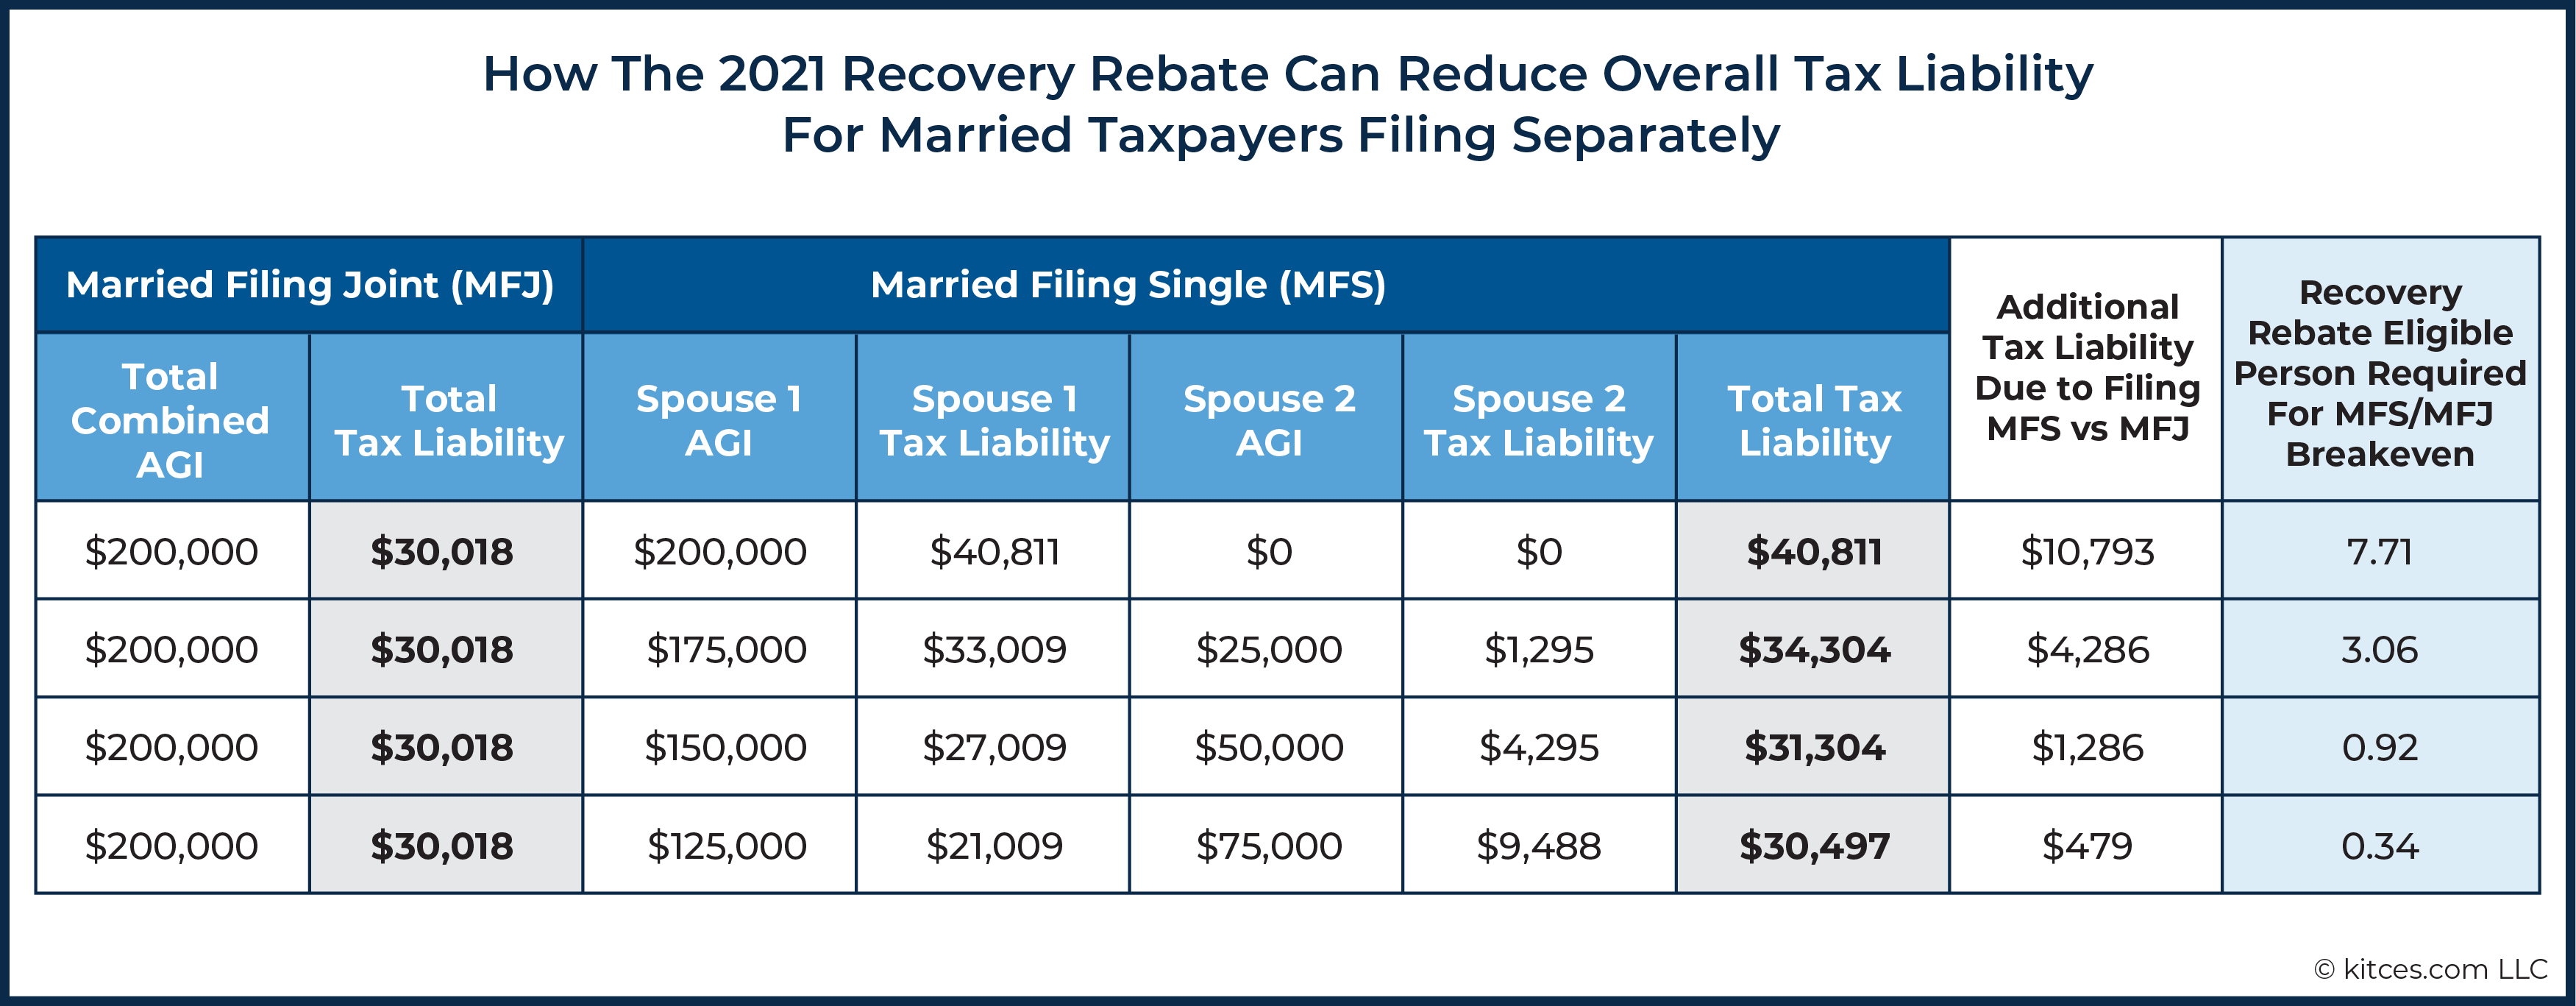 03 How The 2021 Recovery Rebate Can Reduce Overall Tax Liability For Married Taxpayers Filing Separately